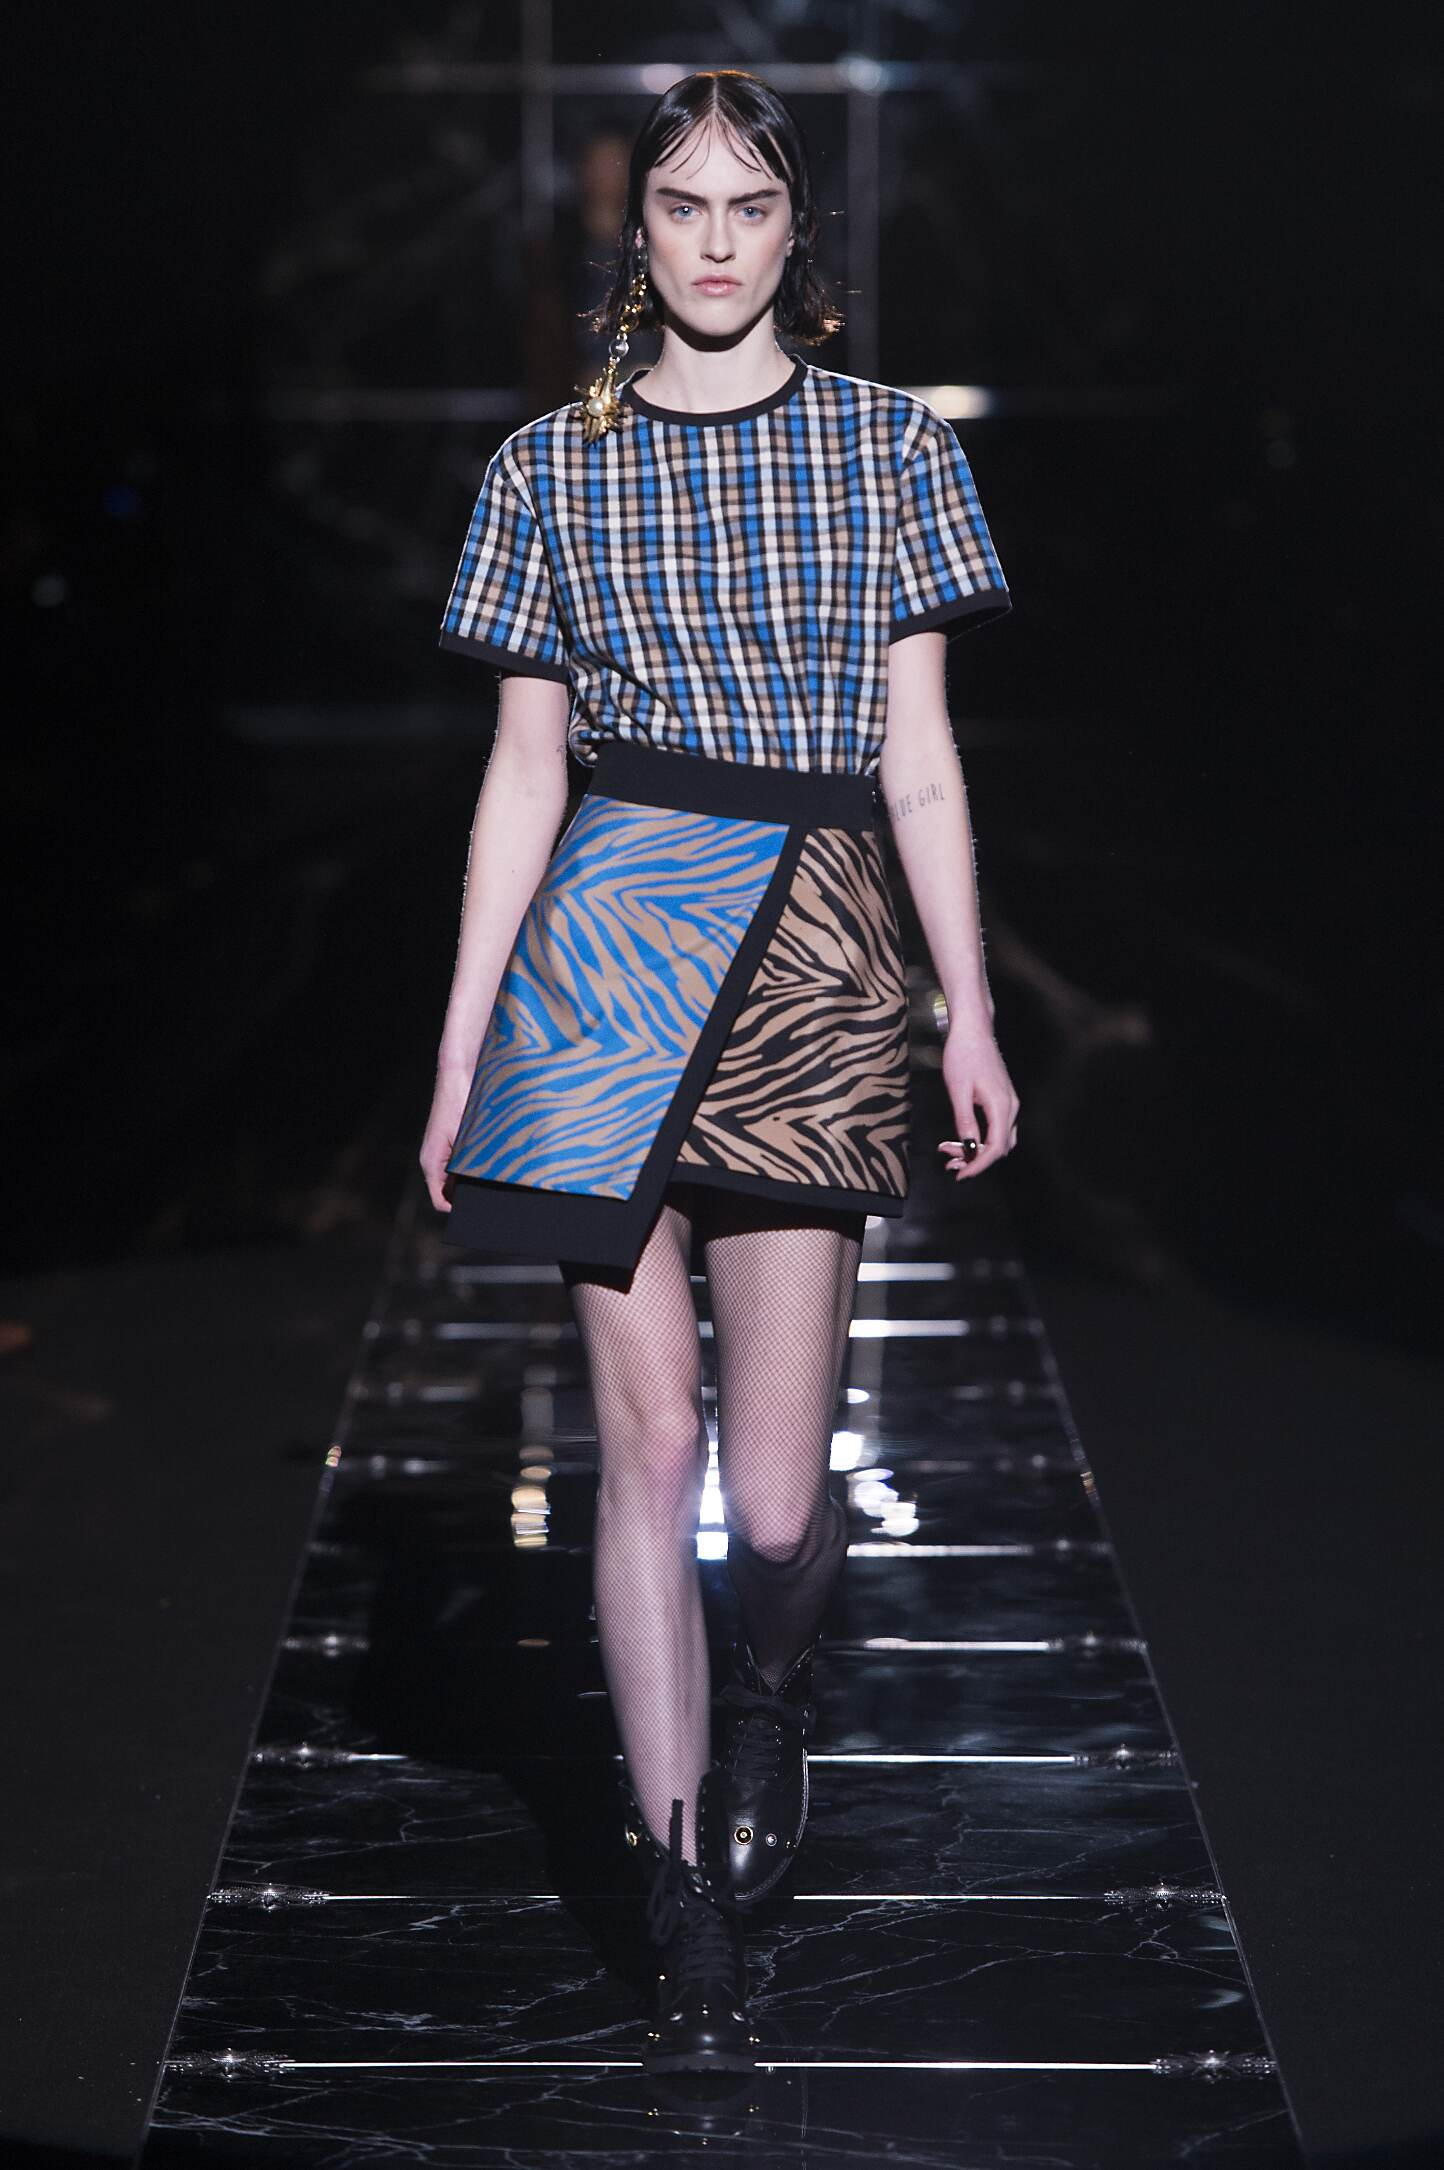 Catwalk Fausto Puglisi Fall Winter 2015 16 Women's Collection Milan Fashion Week